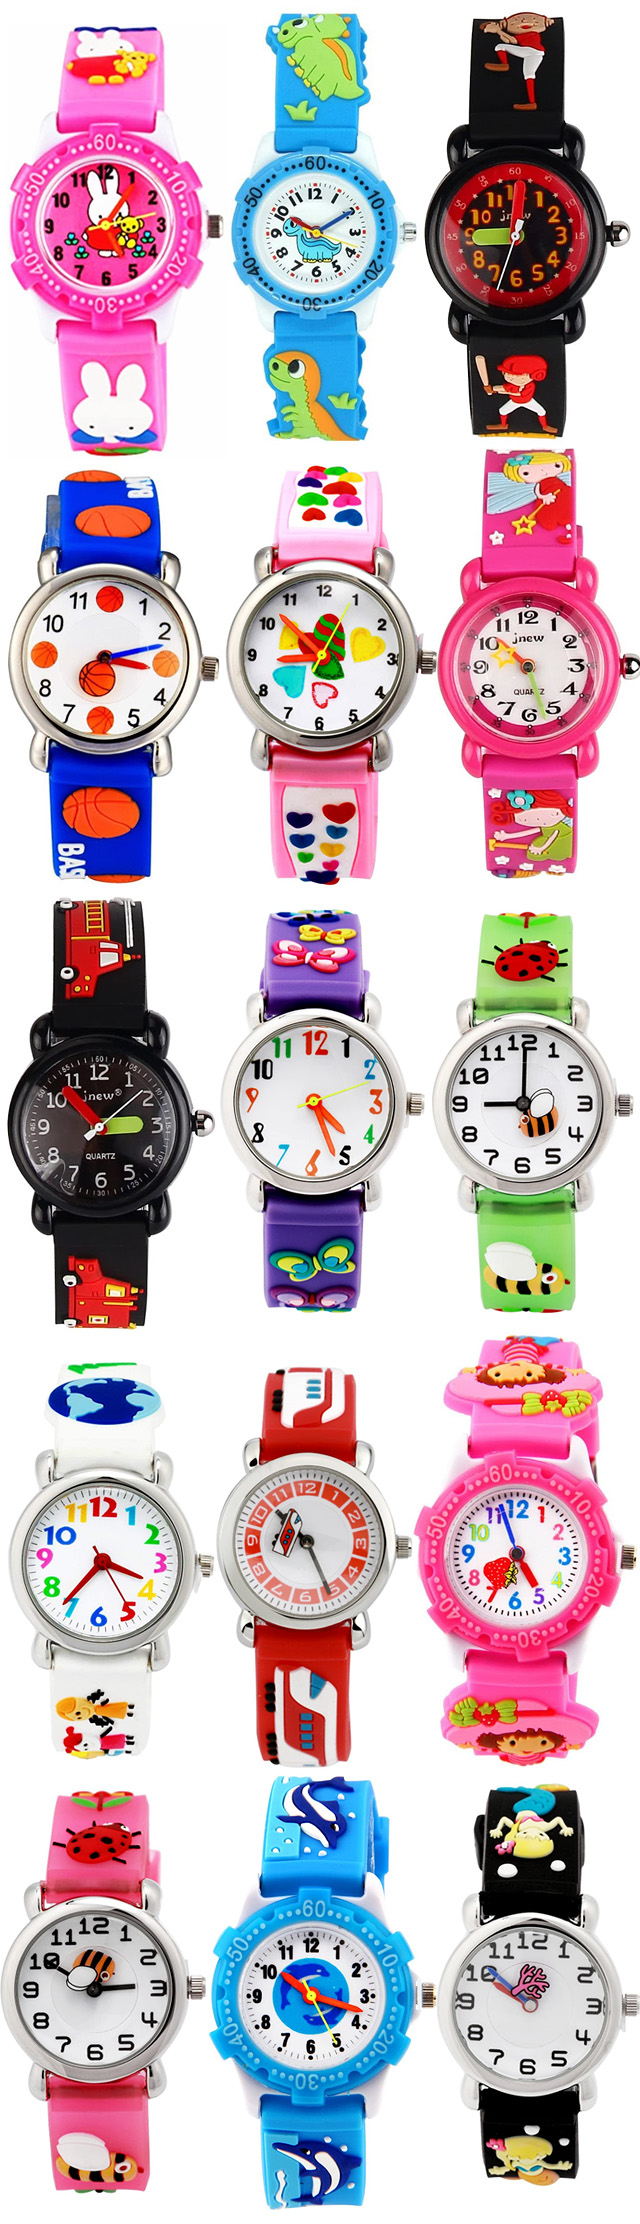 Kids Waterproof Wrist Watches Ages 2-10